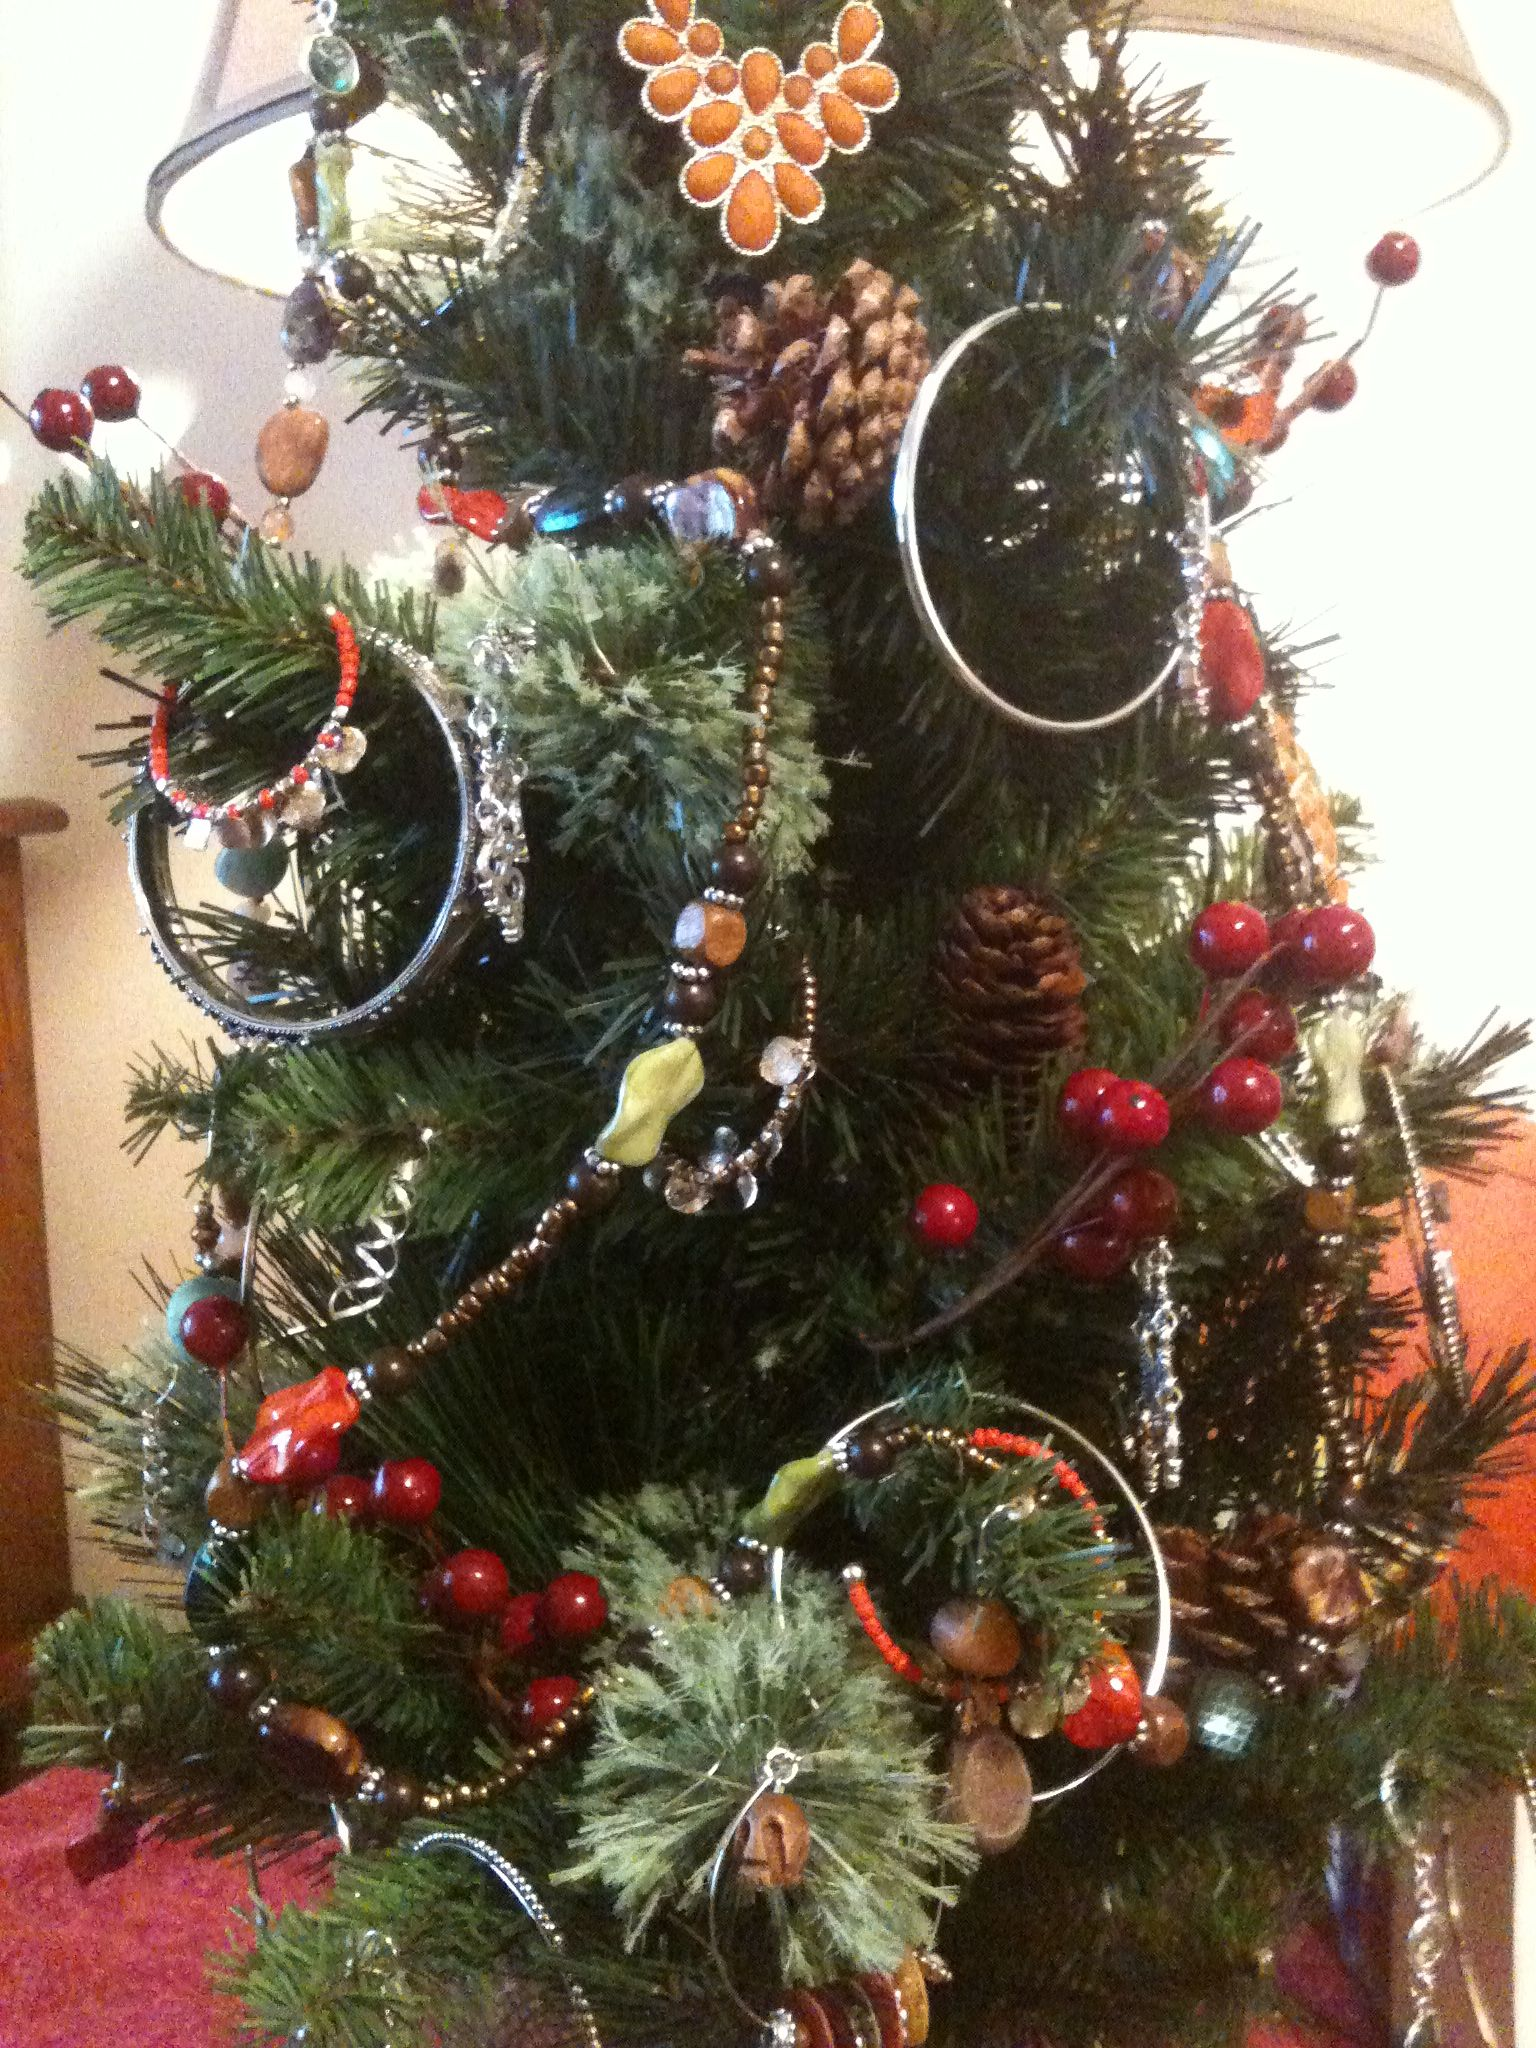 Decorate a Christmas tree with jewelry! So adorable!